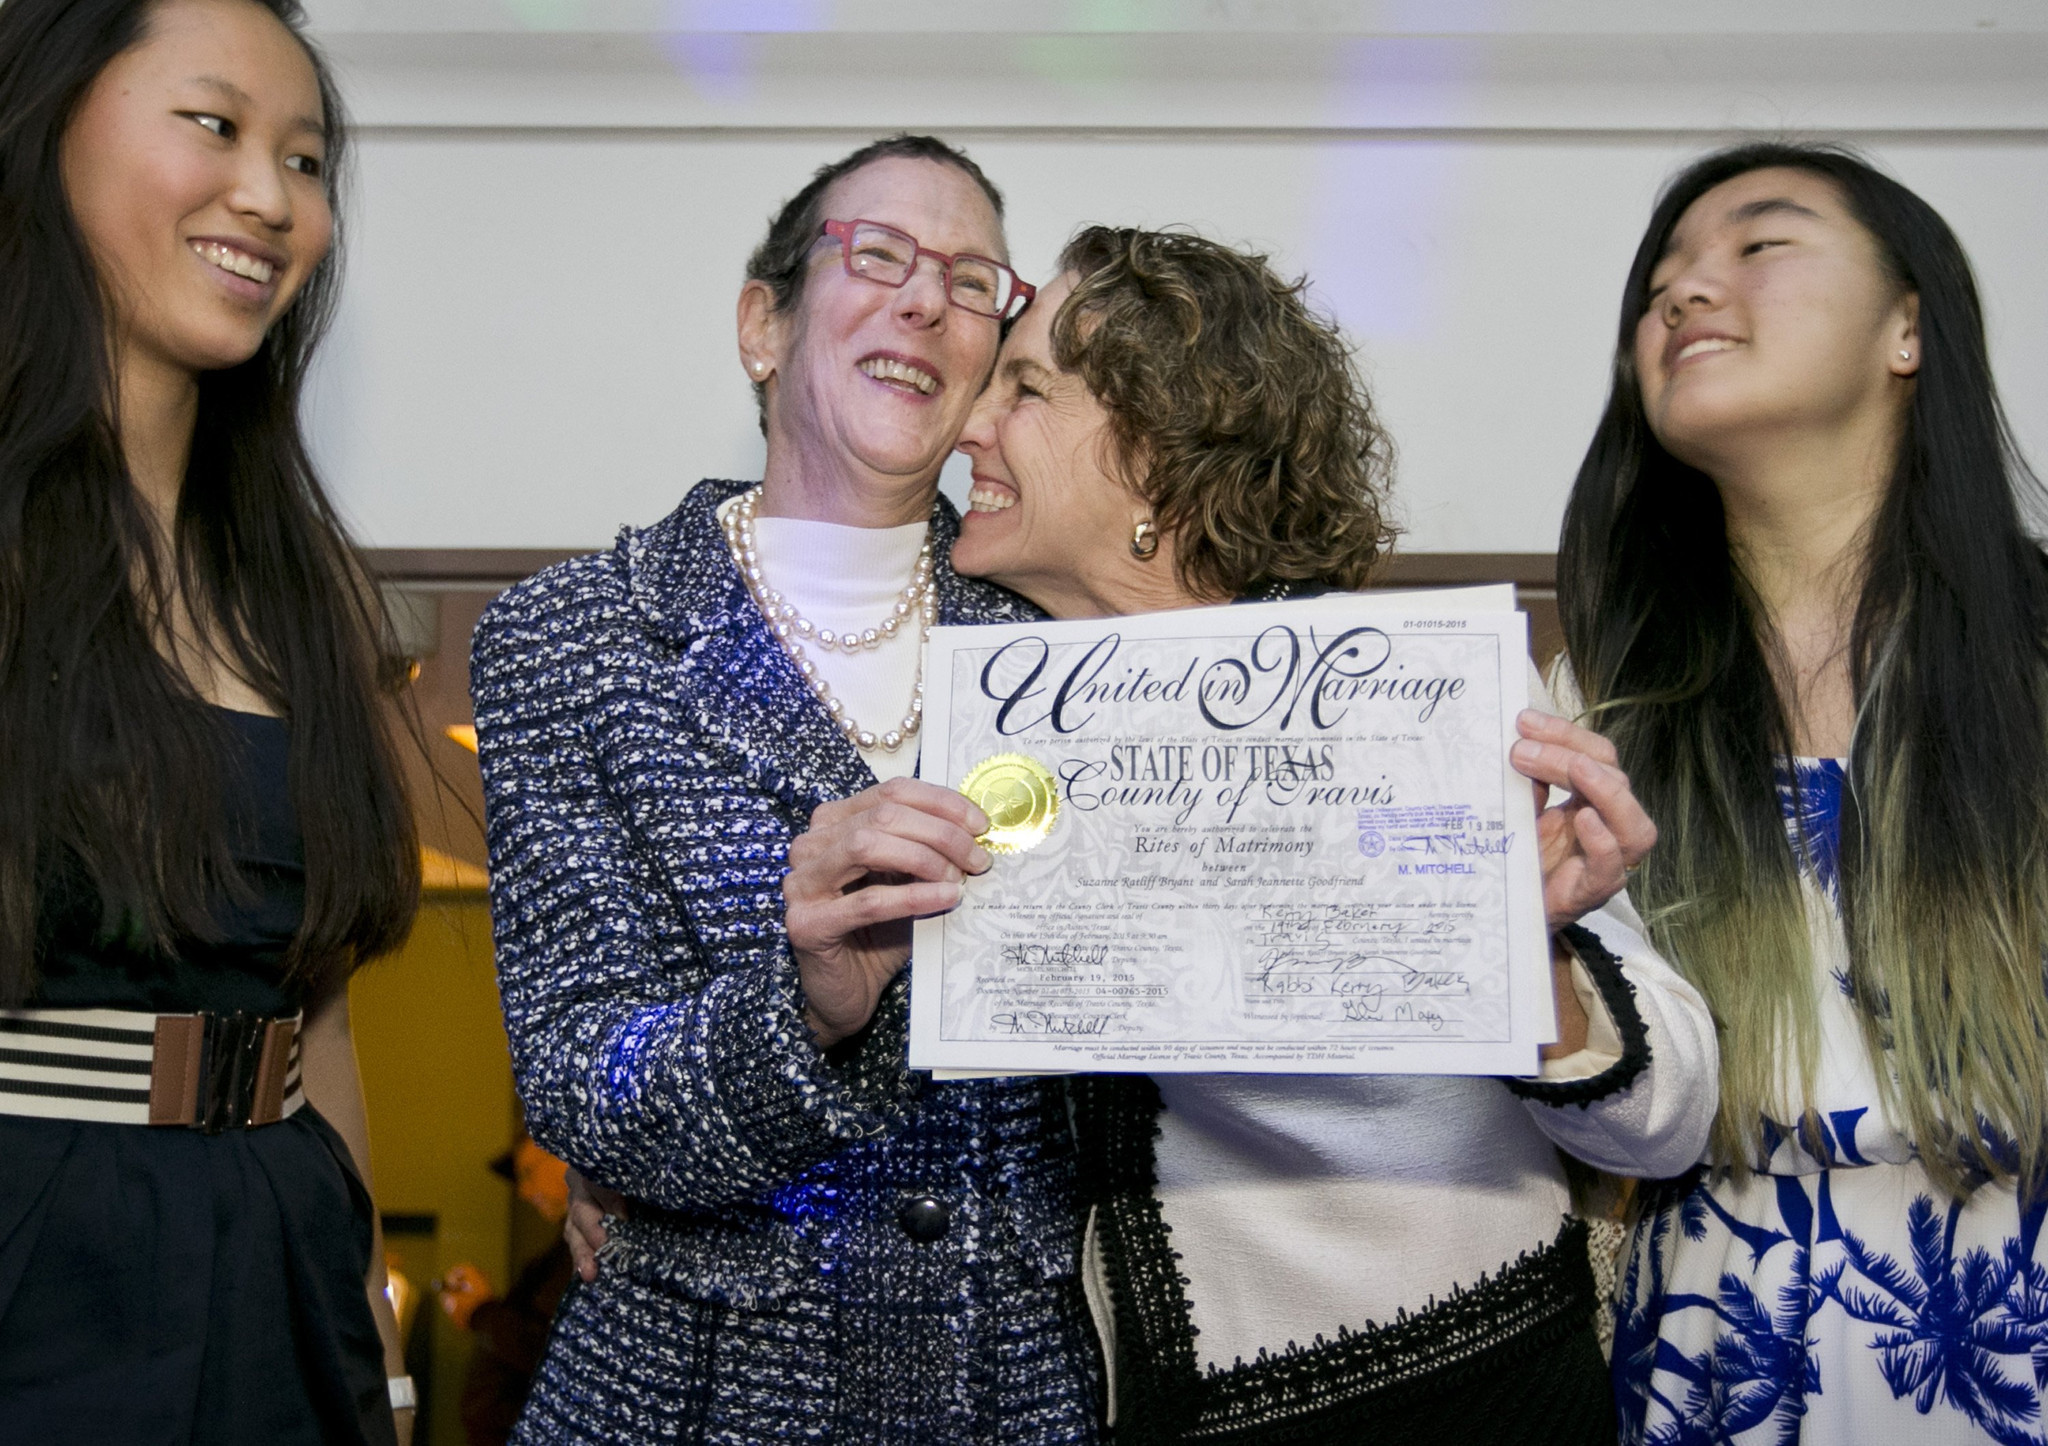 How To Adopt In Tennessee Texas' First Samesex Marriage Weds Couple With  'immediate Health Concerns' La Times